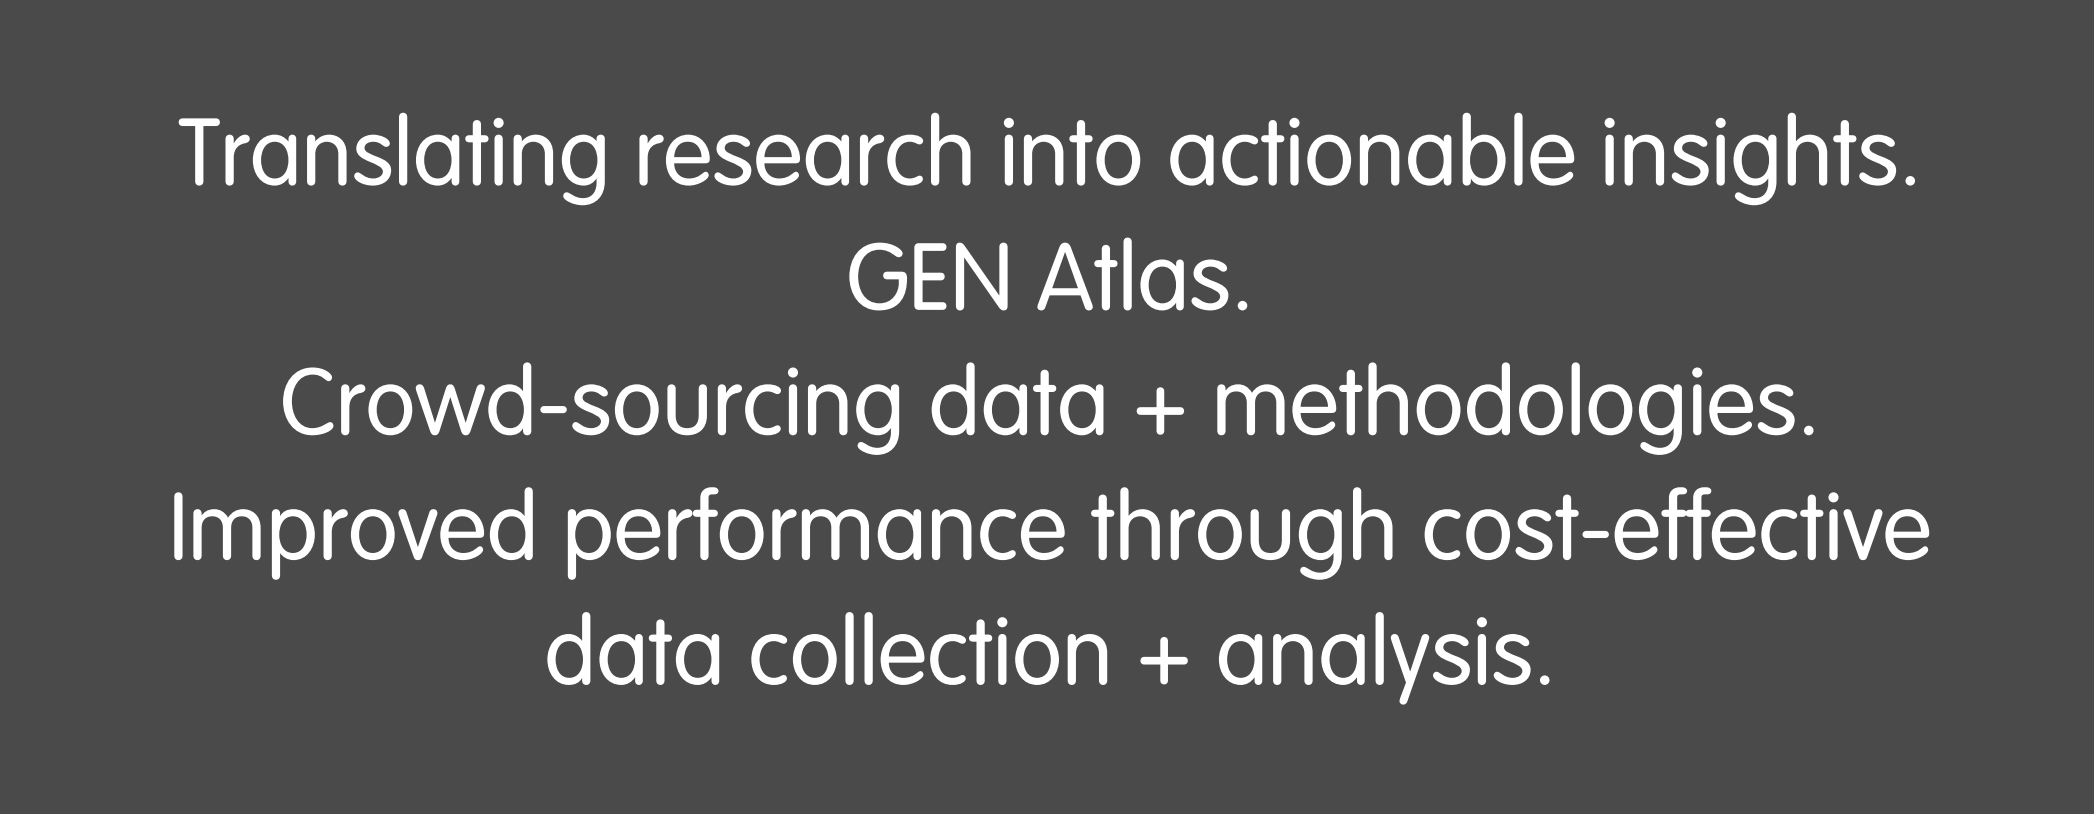 Translating research into actionable insights. GEN Atlas. Crowd-sourcing data + methodologies. Improved performance through cost-effective data collection + analysis.